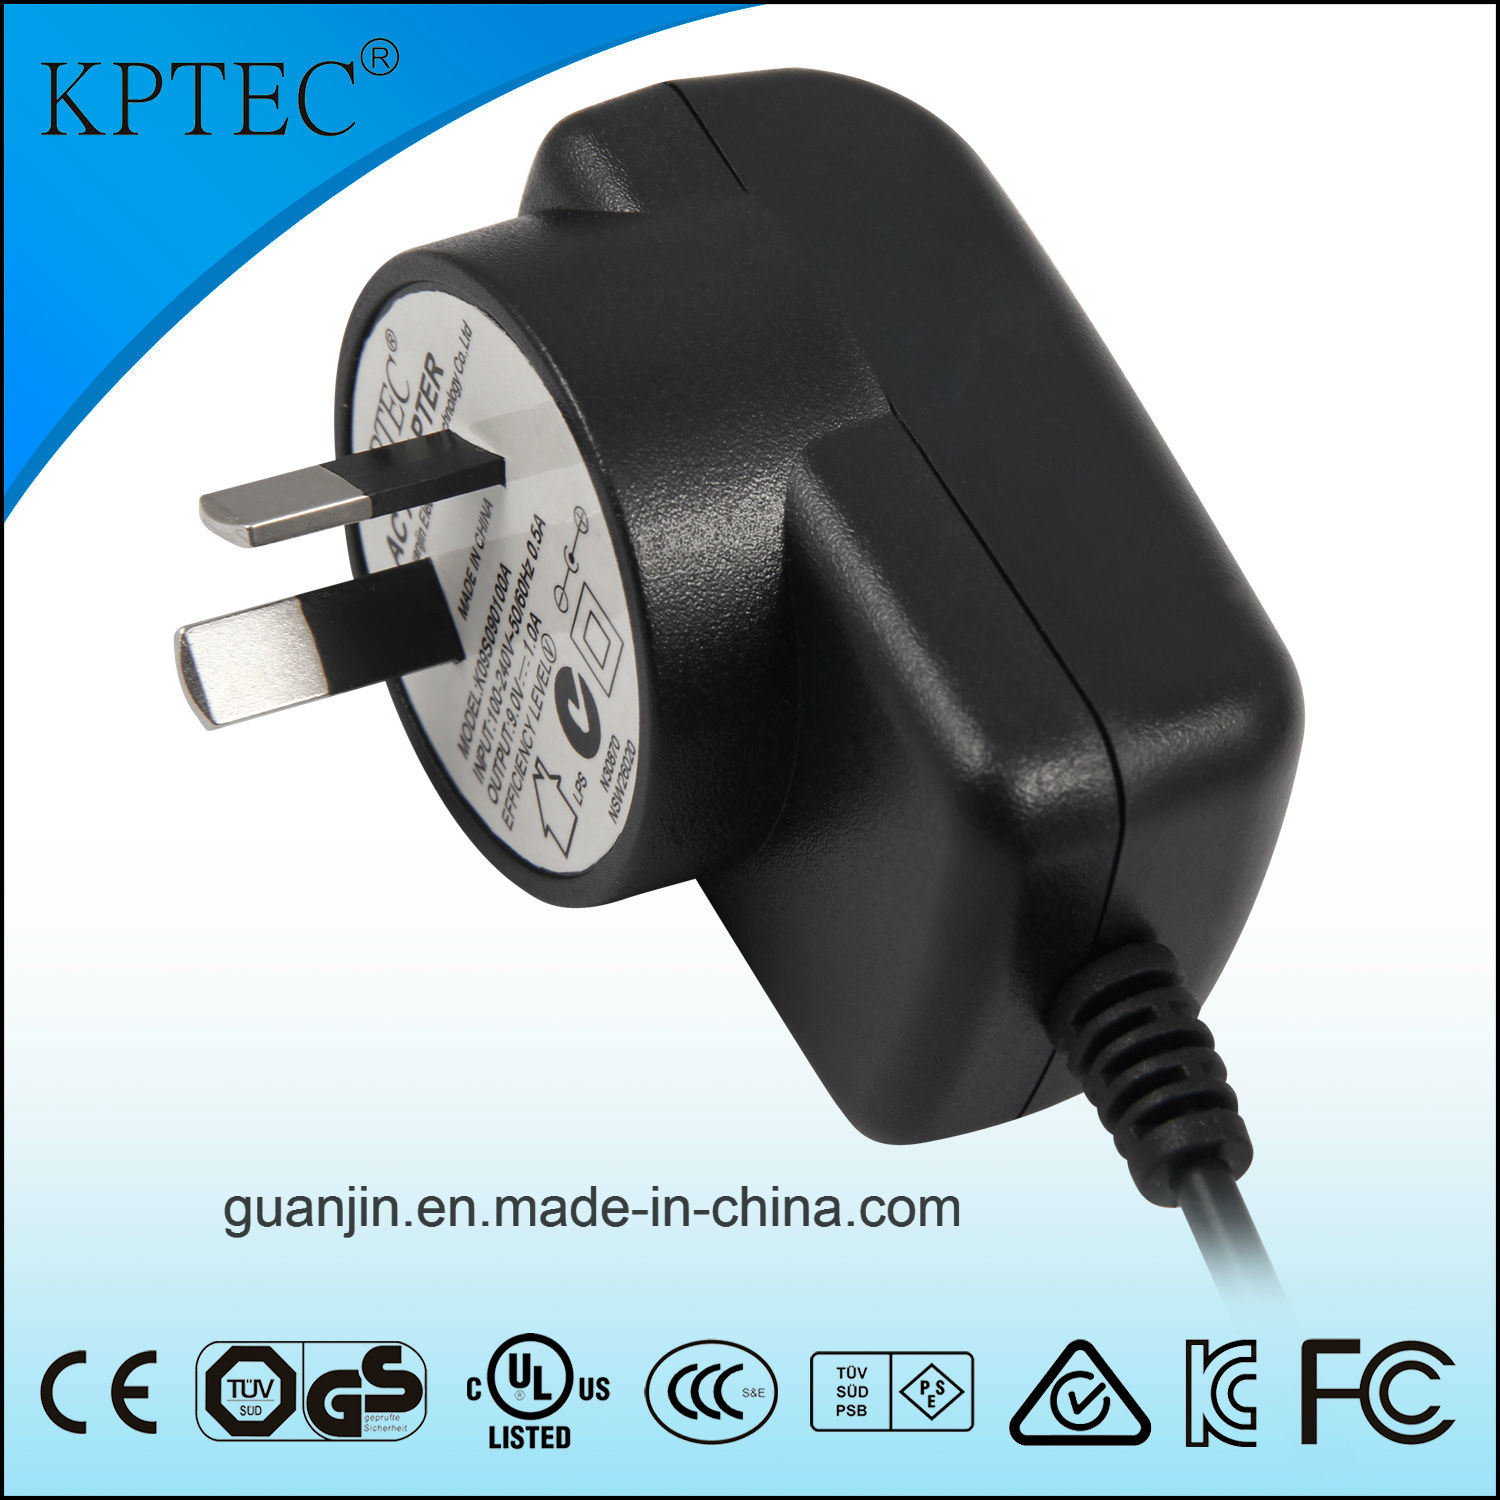 Australia Plug AC/DC Adapter with SAA and Gems